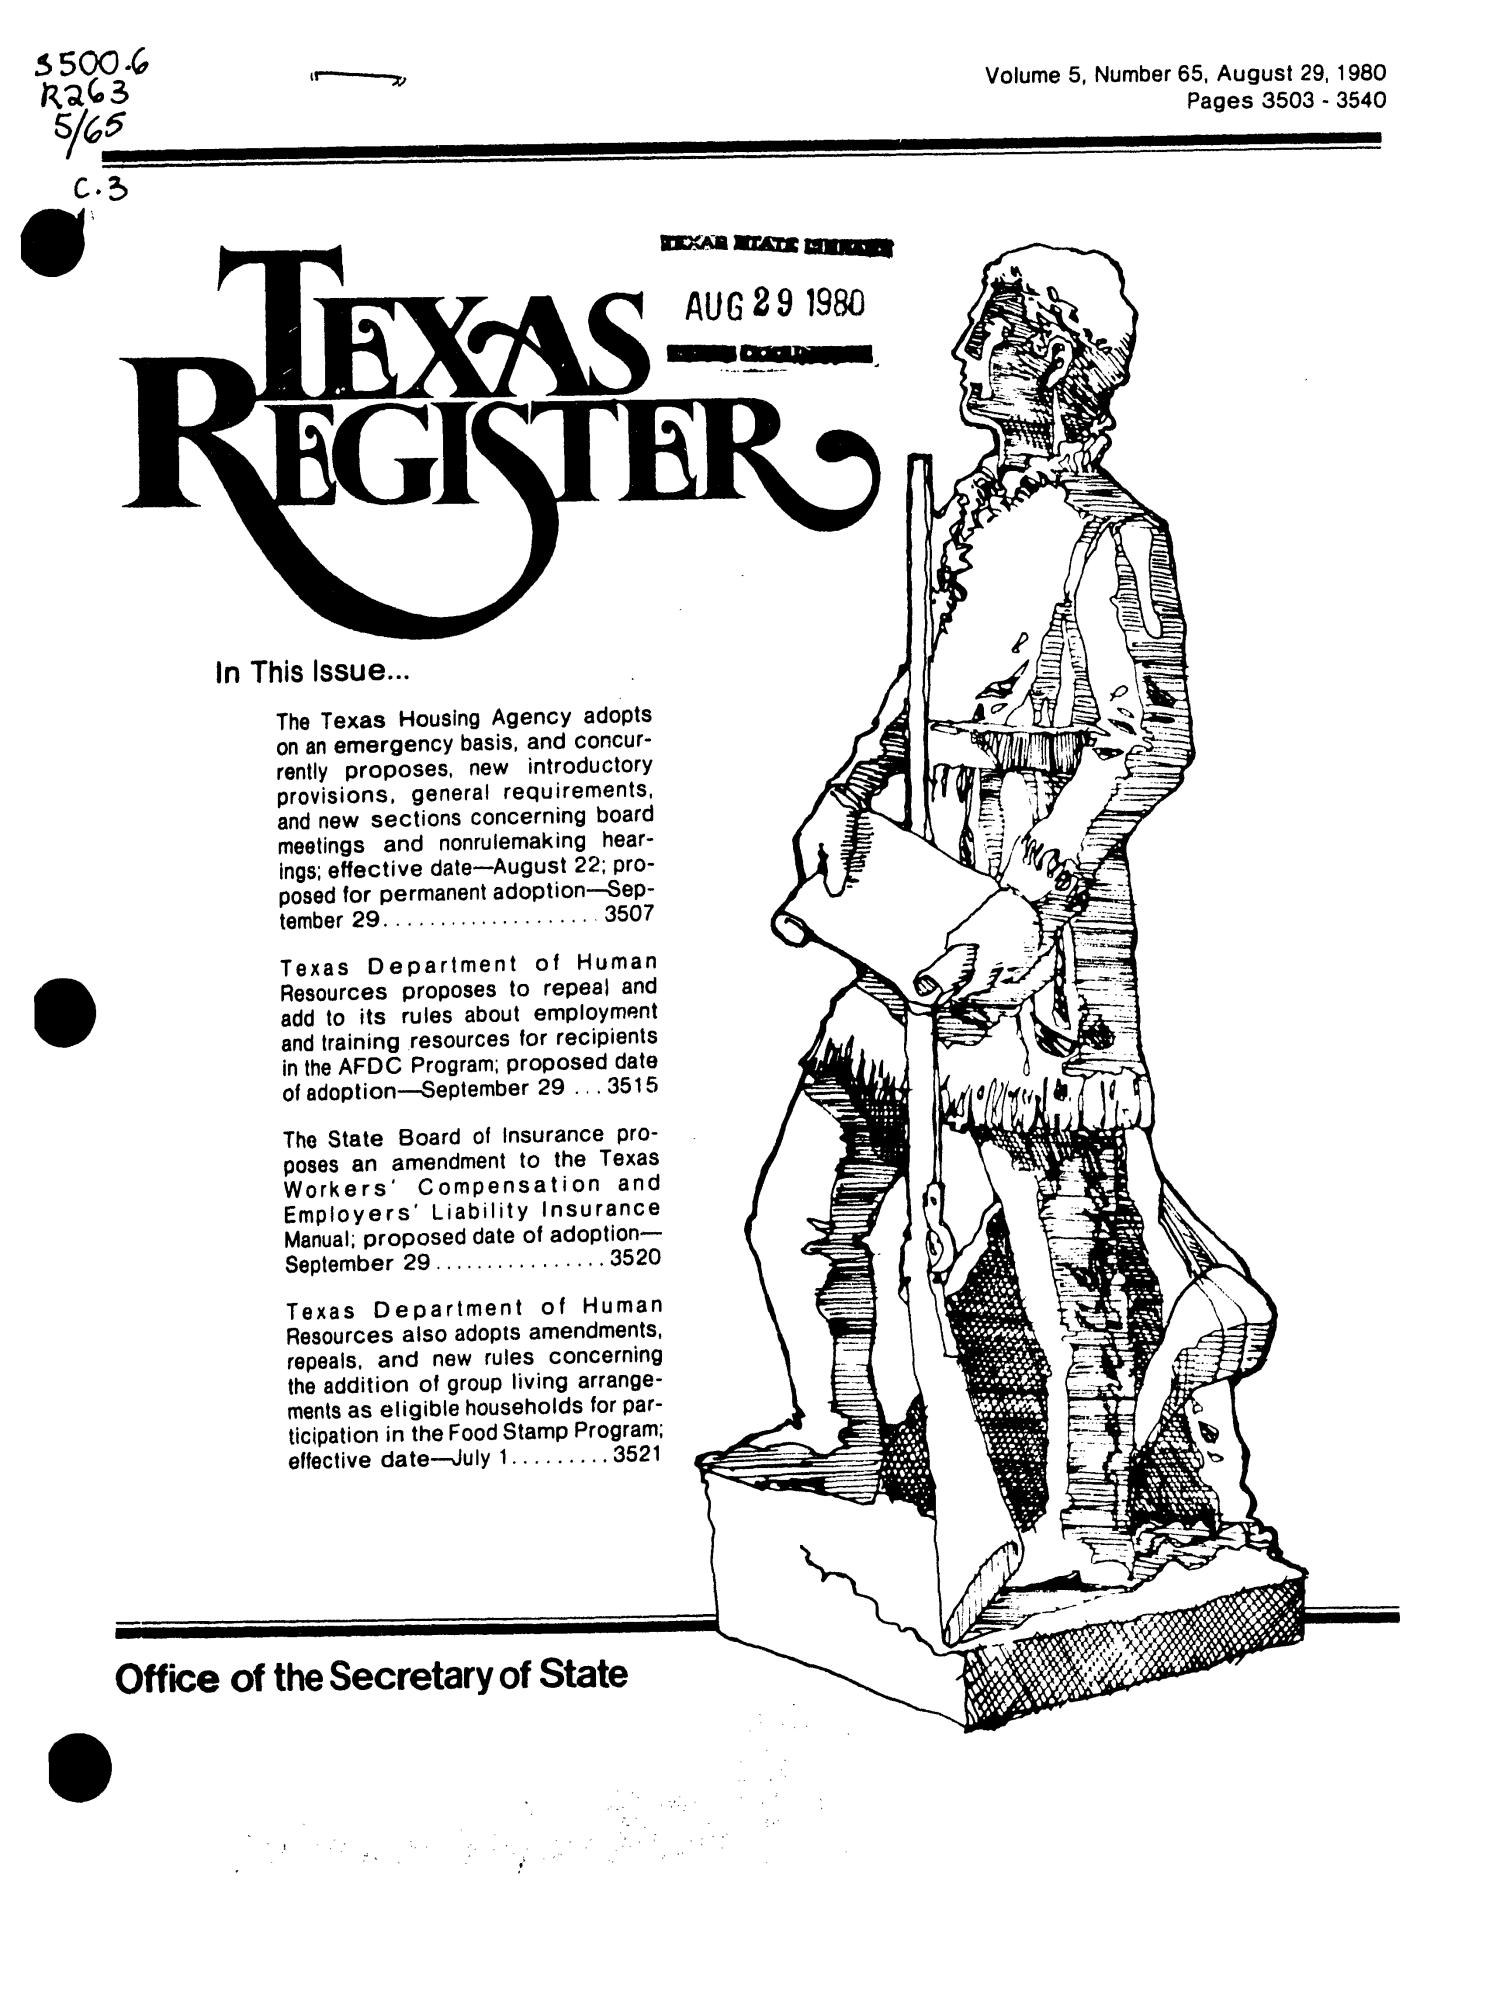 Texas Register, Volume 5, Number 65, Pages 35033540, August 29, 1980 The  Application